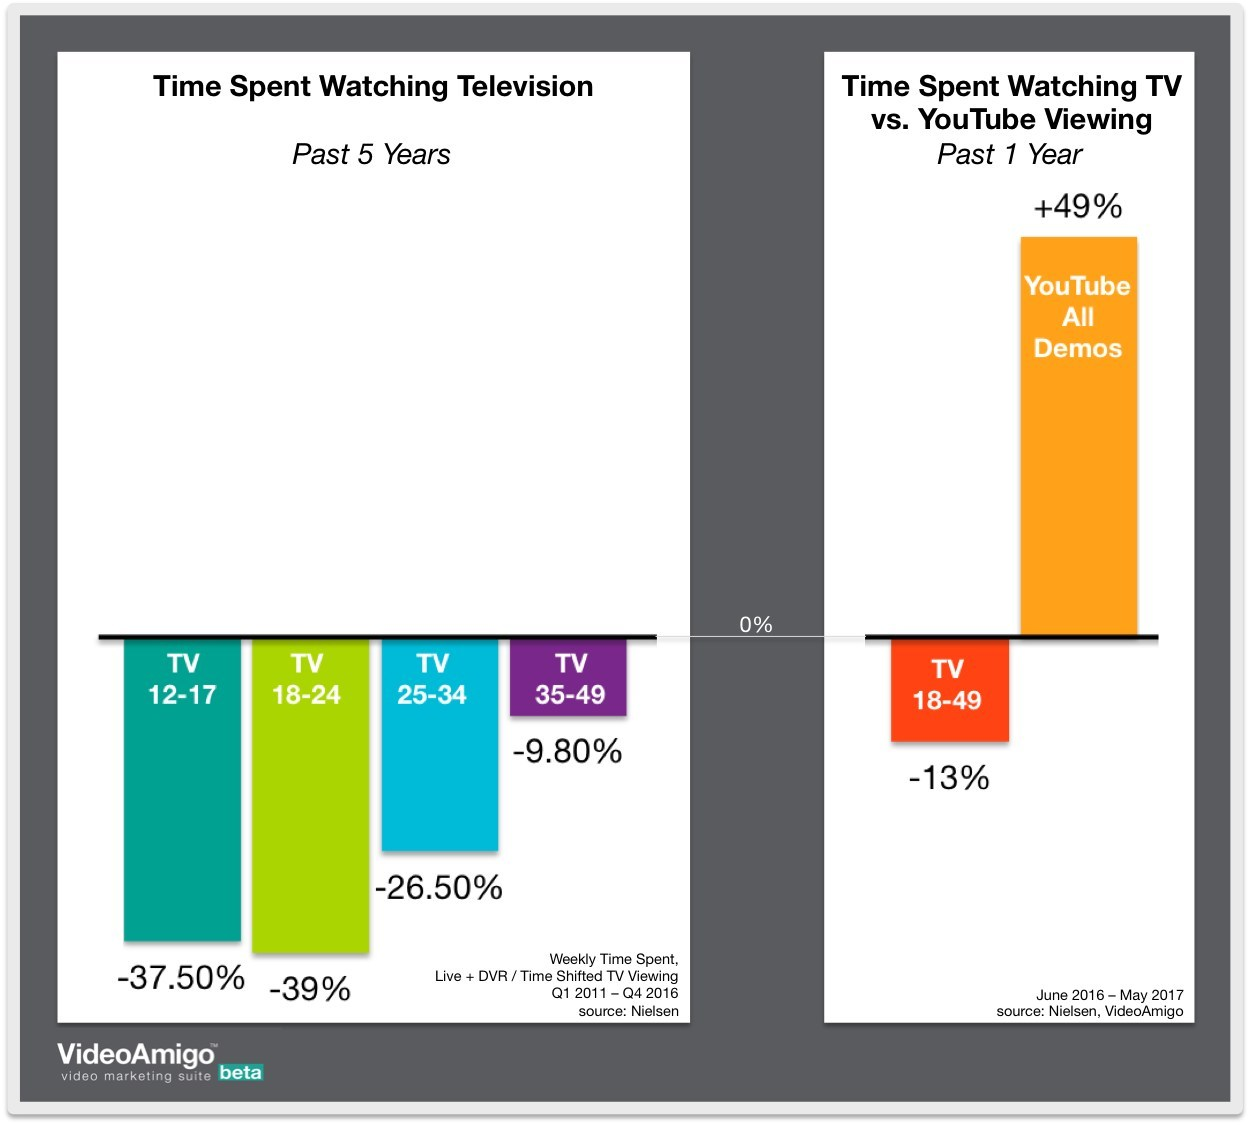 Comparisons of the declining time spent watching television vs. the increasing time spent viewing YouTube. (United States)